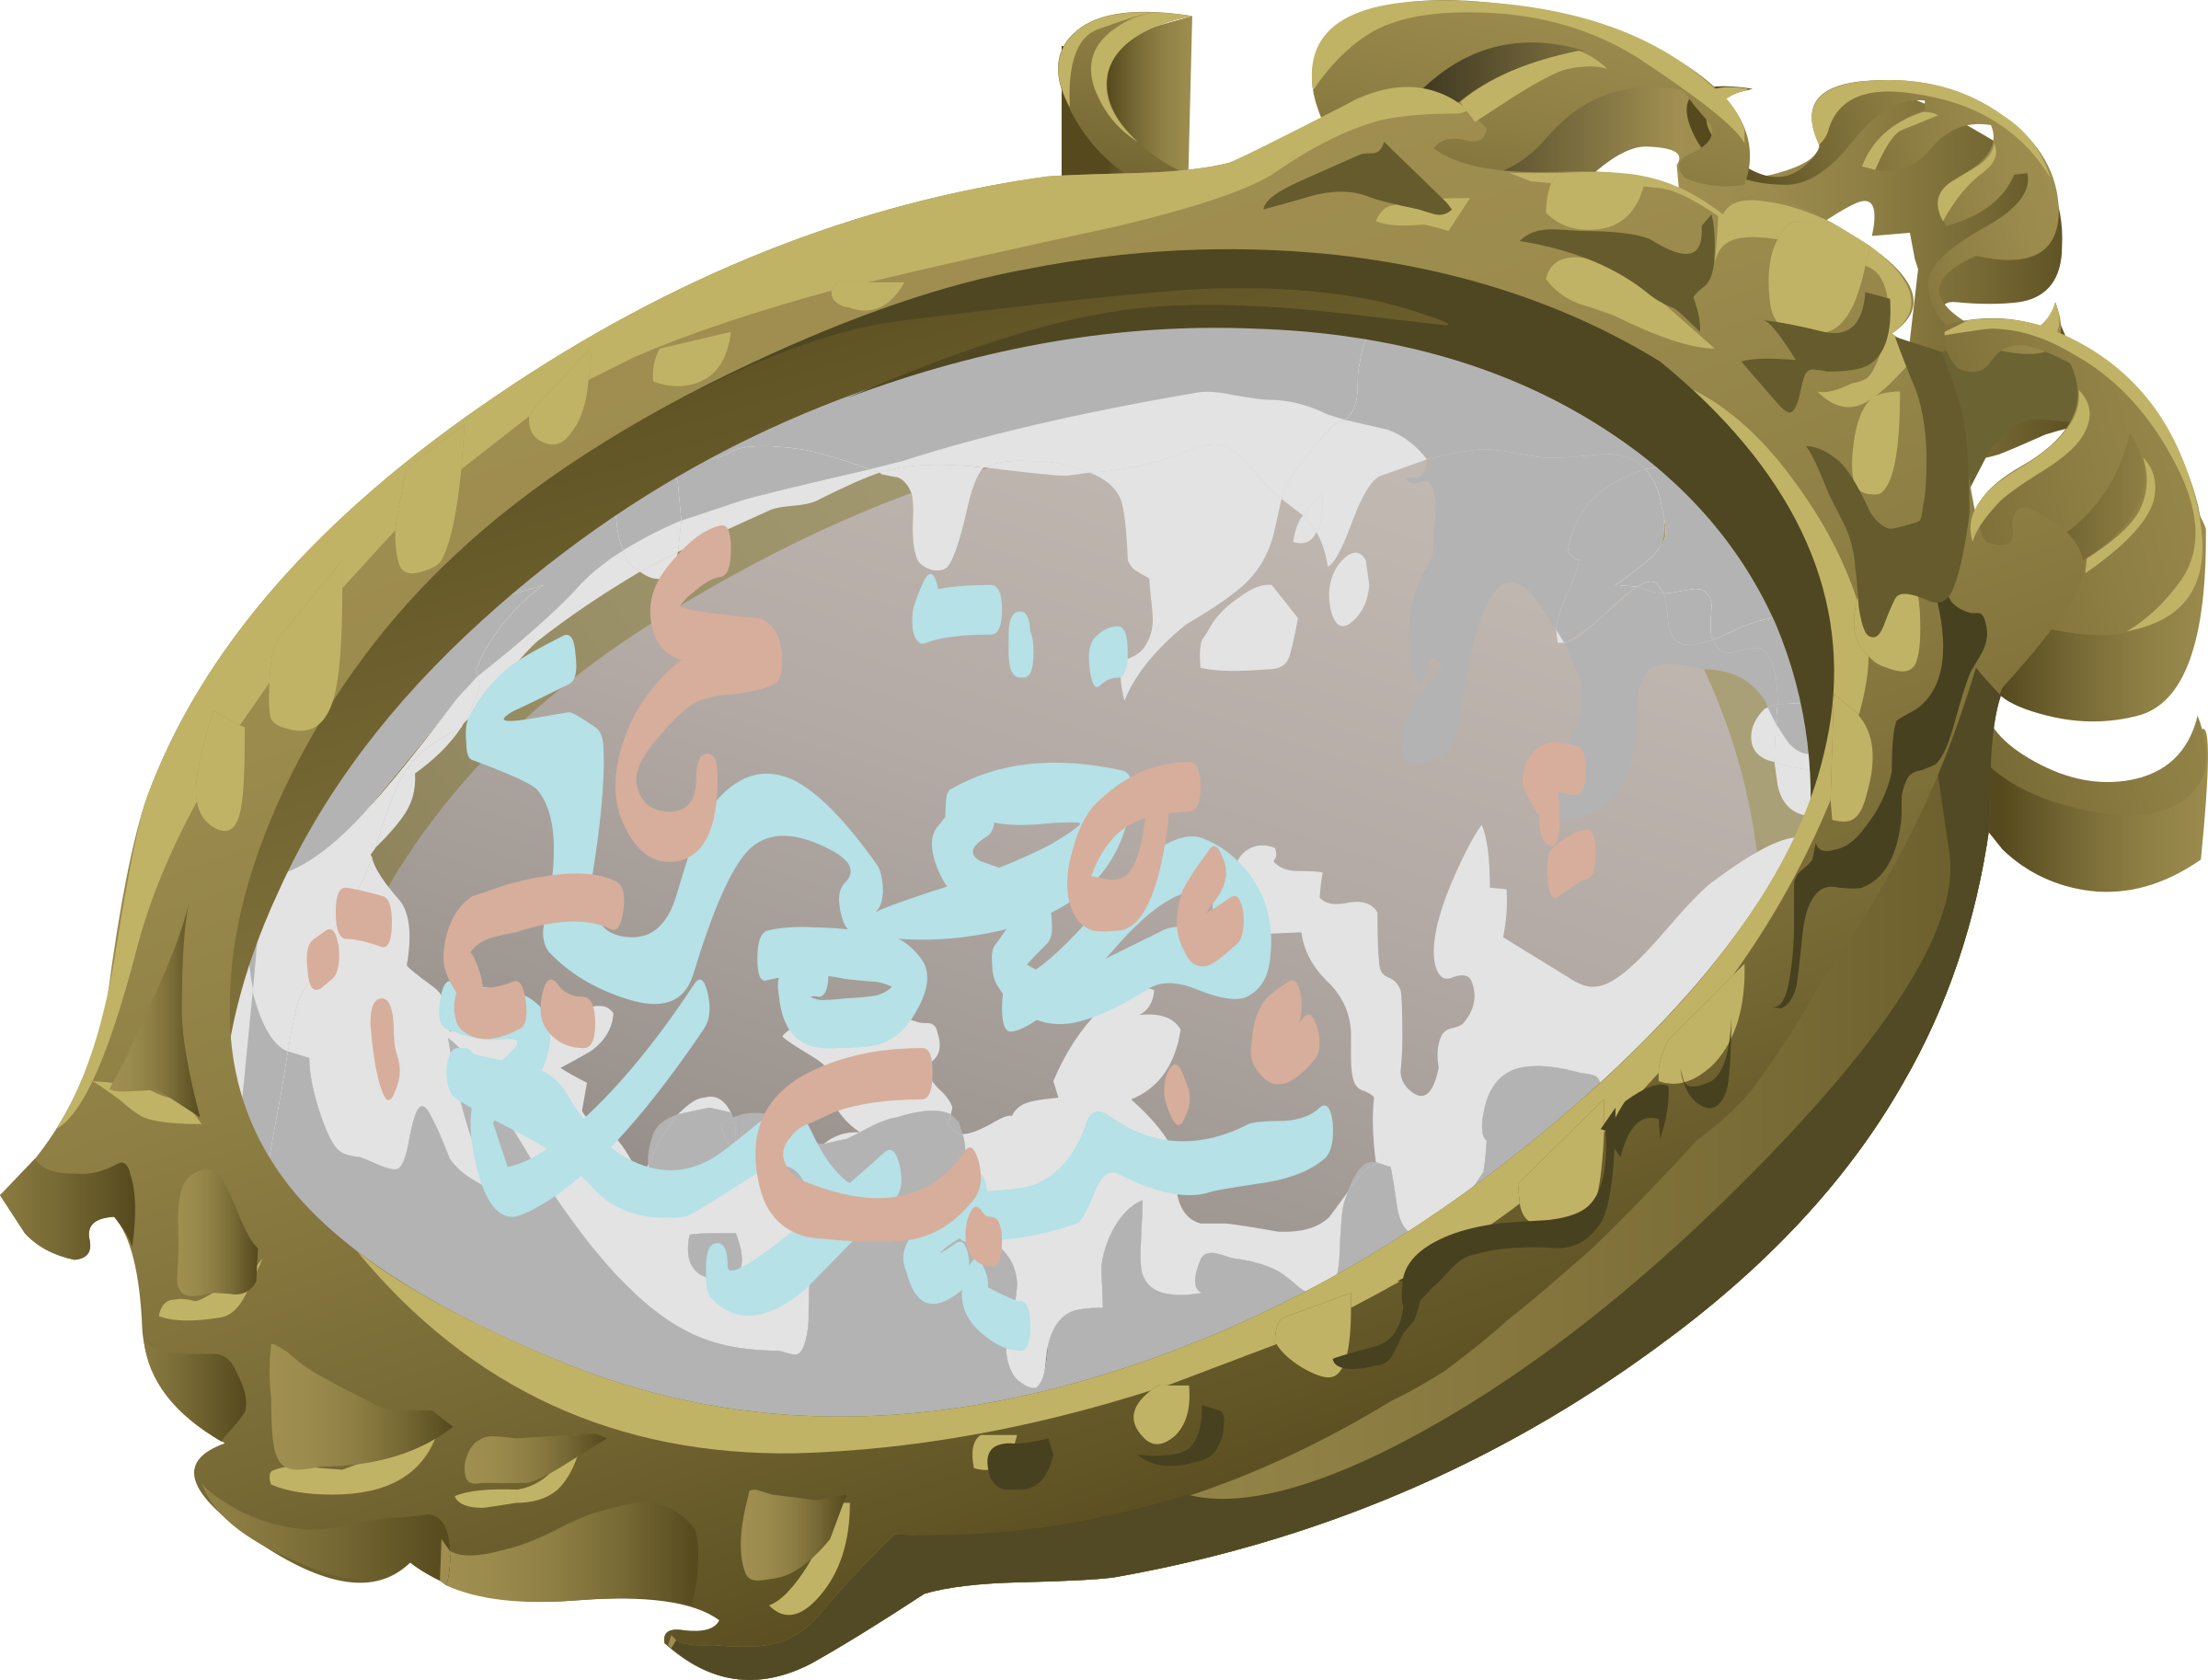 Artifact Mirror With Scribbles by glitch